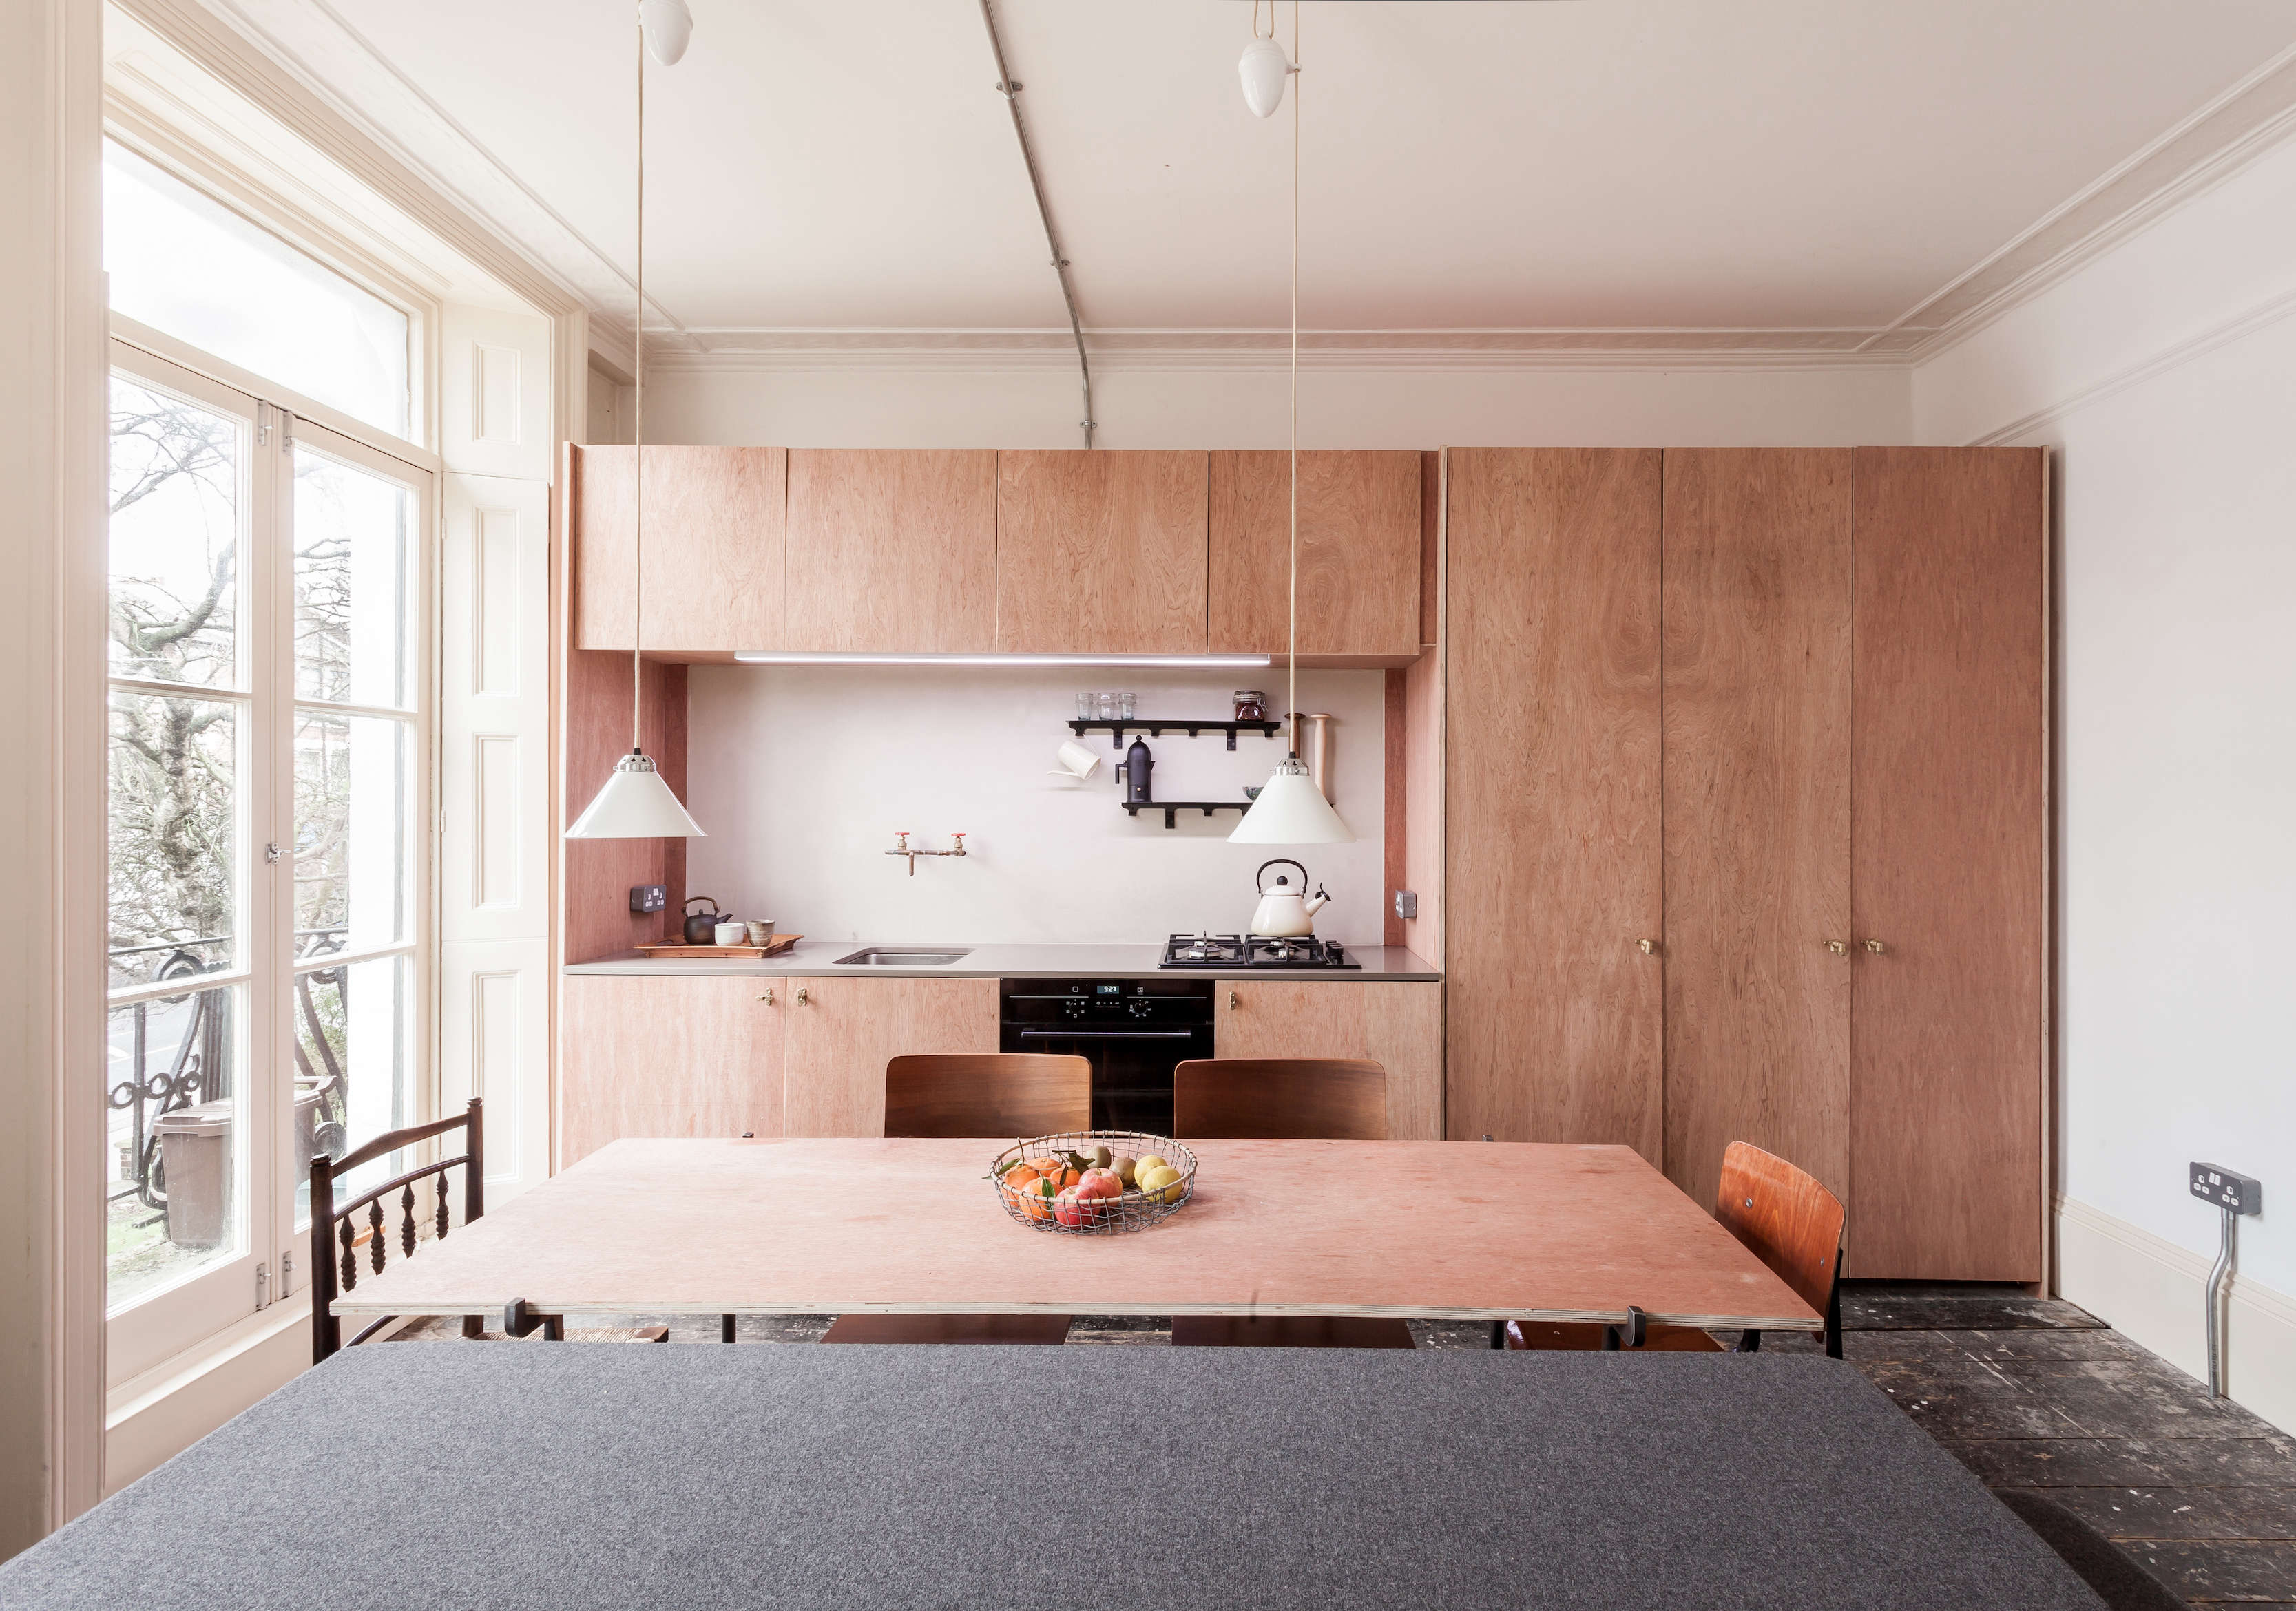 plywood cabinets in a small kitchen open to dining and living area, designed by 10